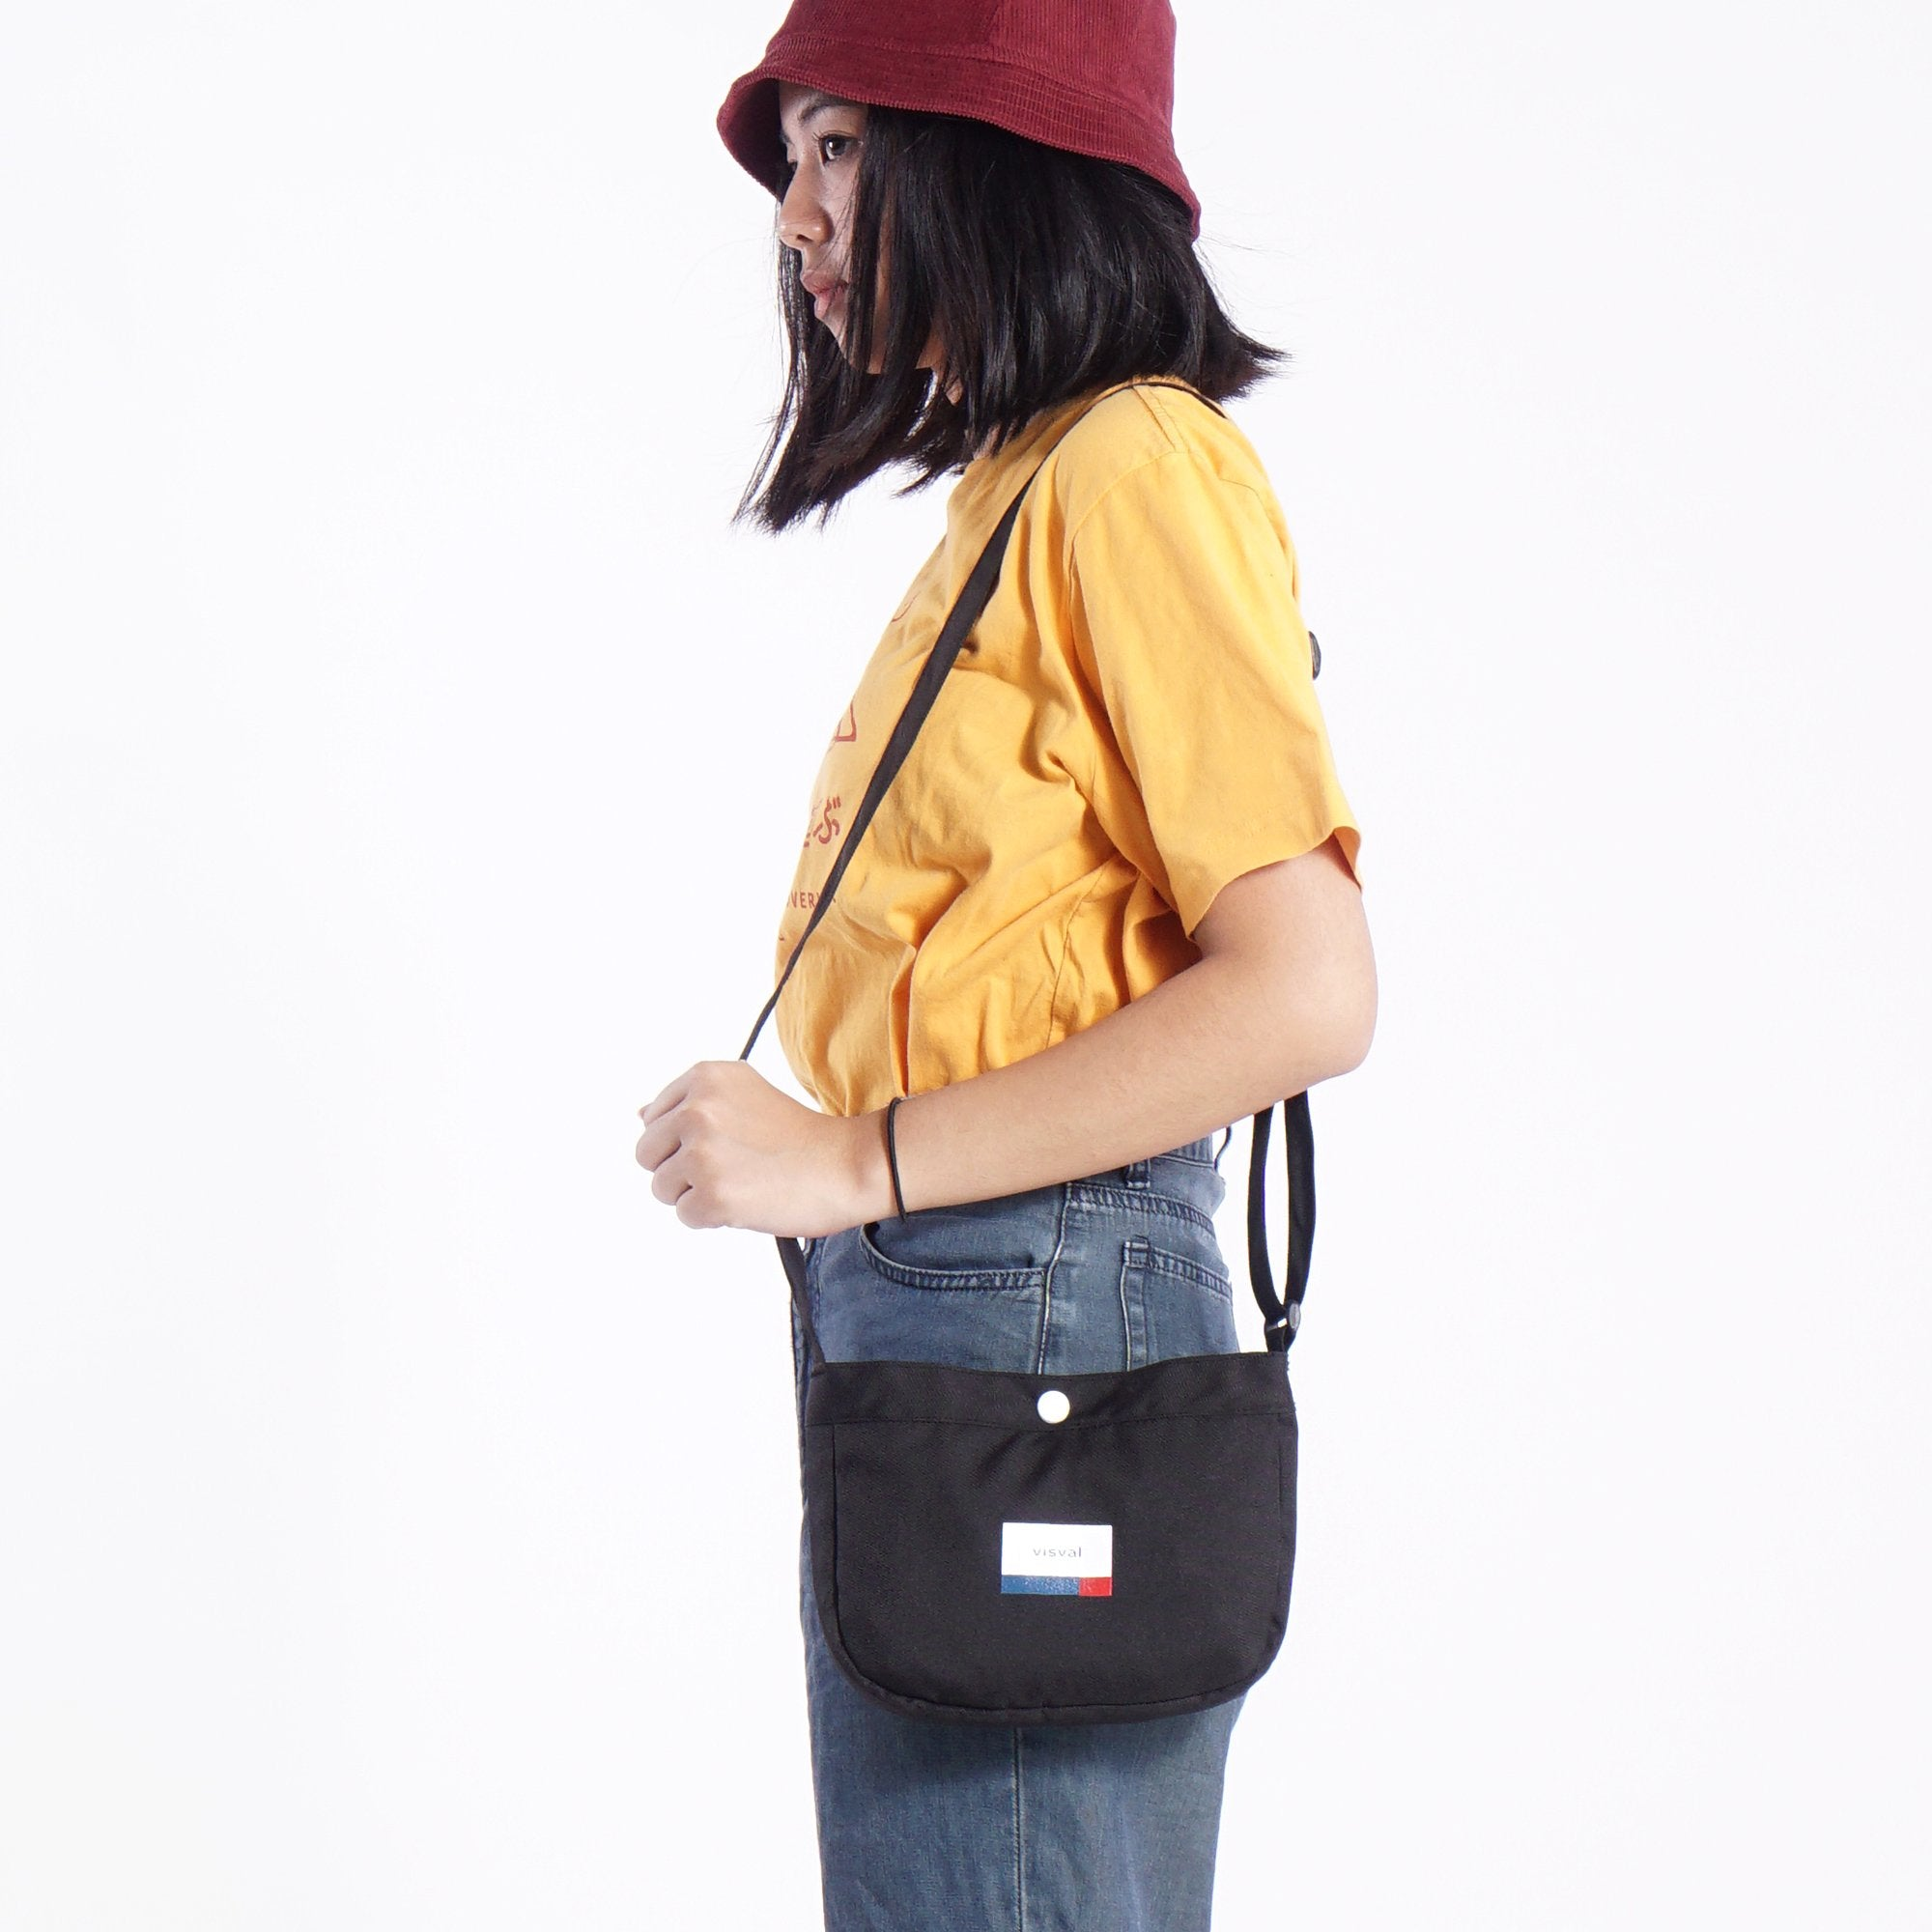 Maru Sling Bag Black